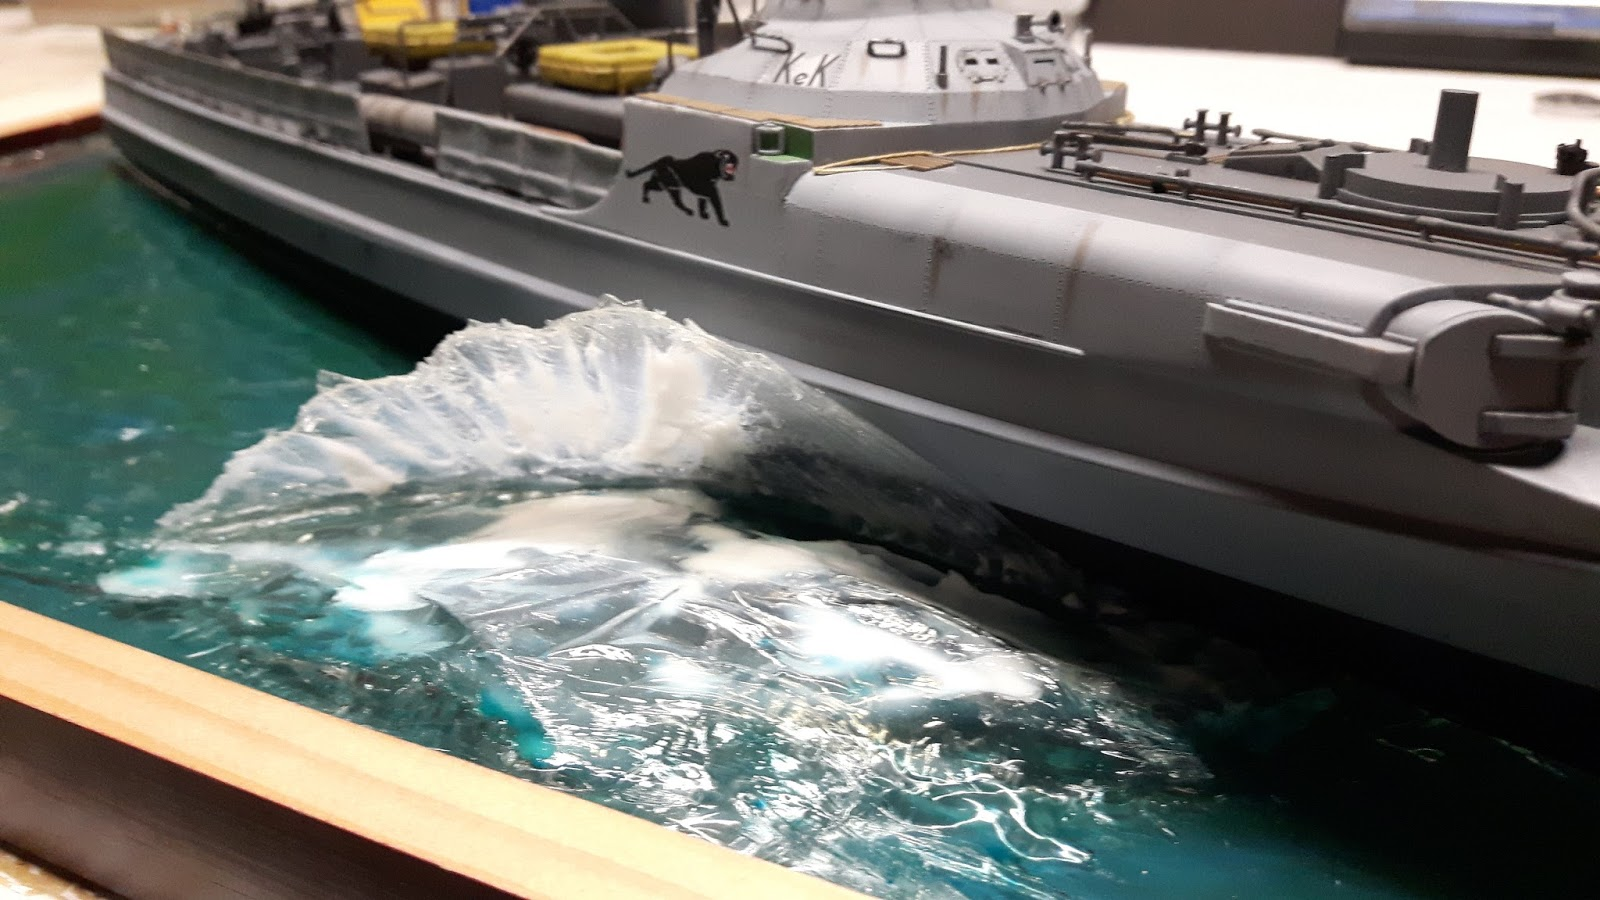 1 72 Scale Kits Amp Diorama Revell S 100 Schellboot Water